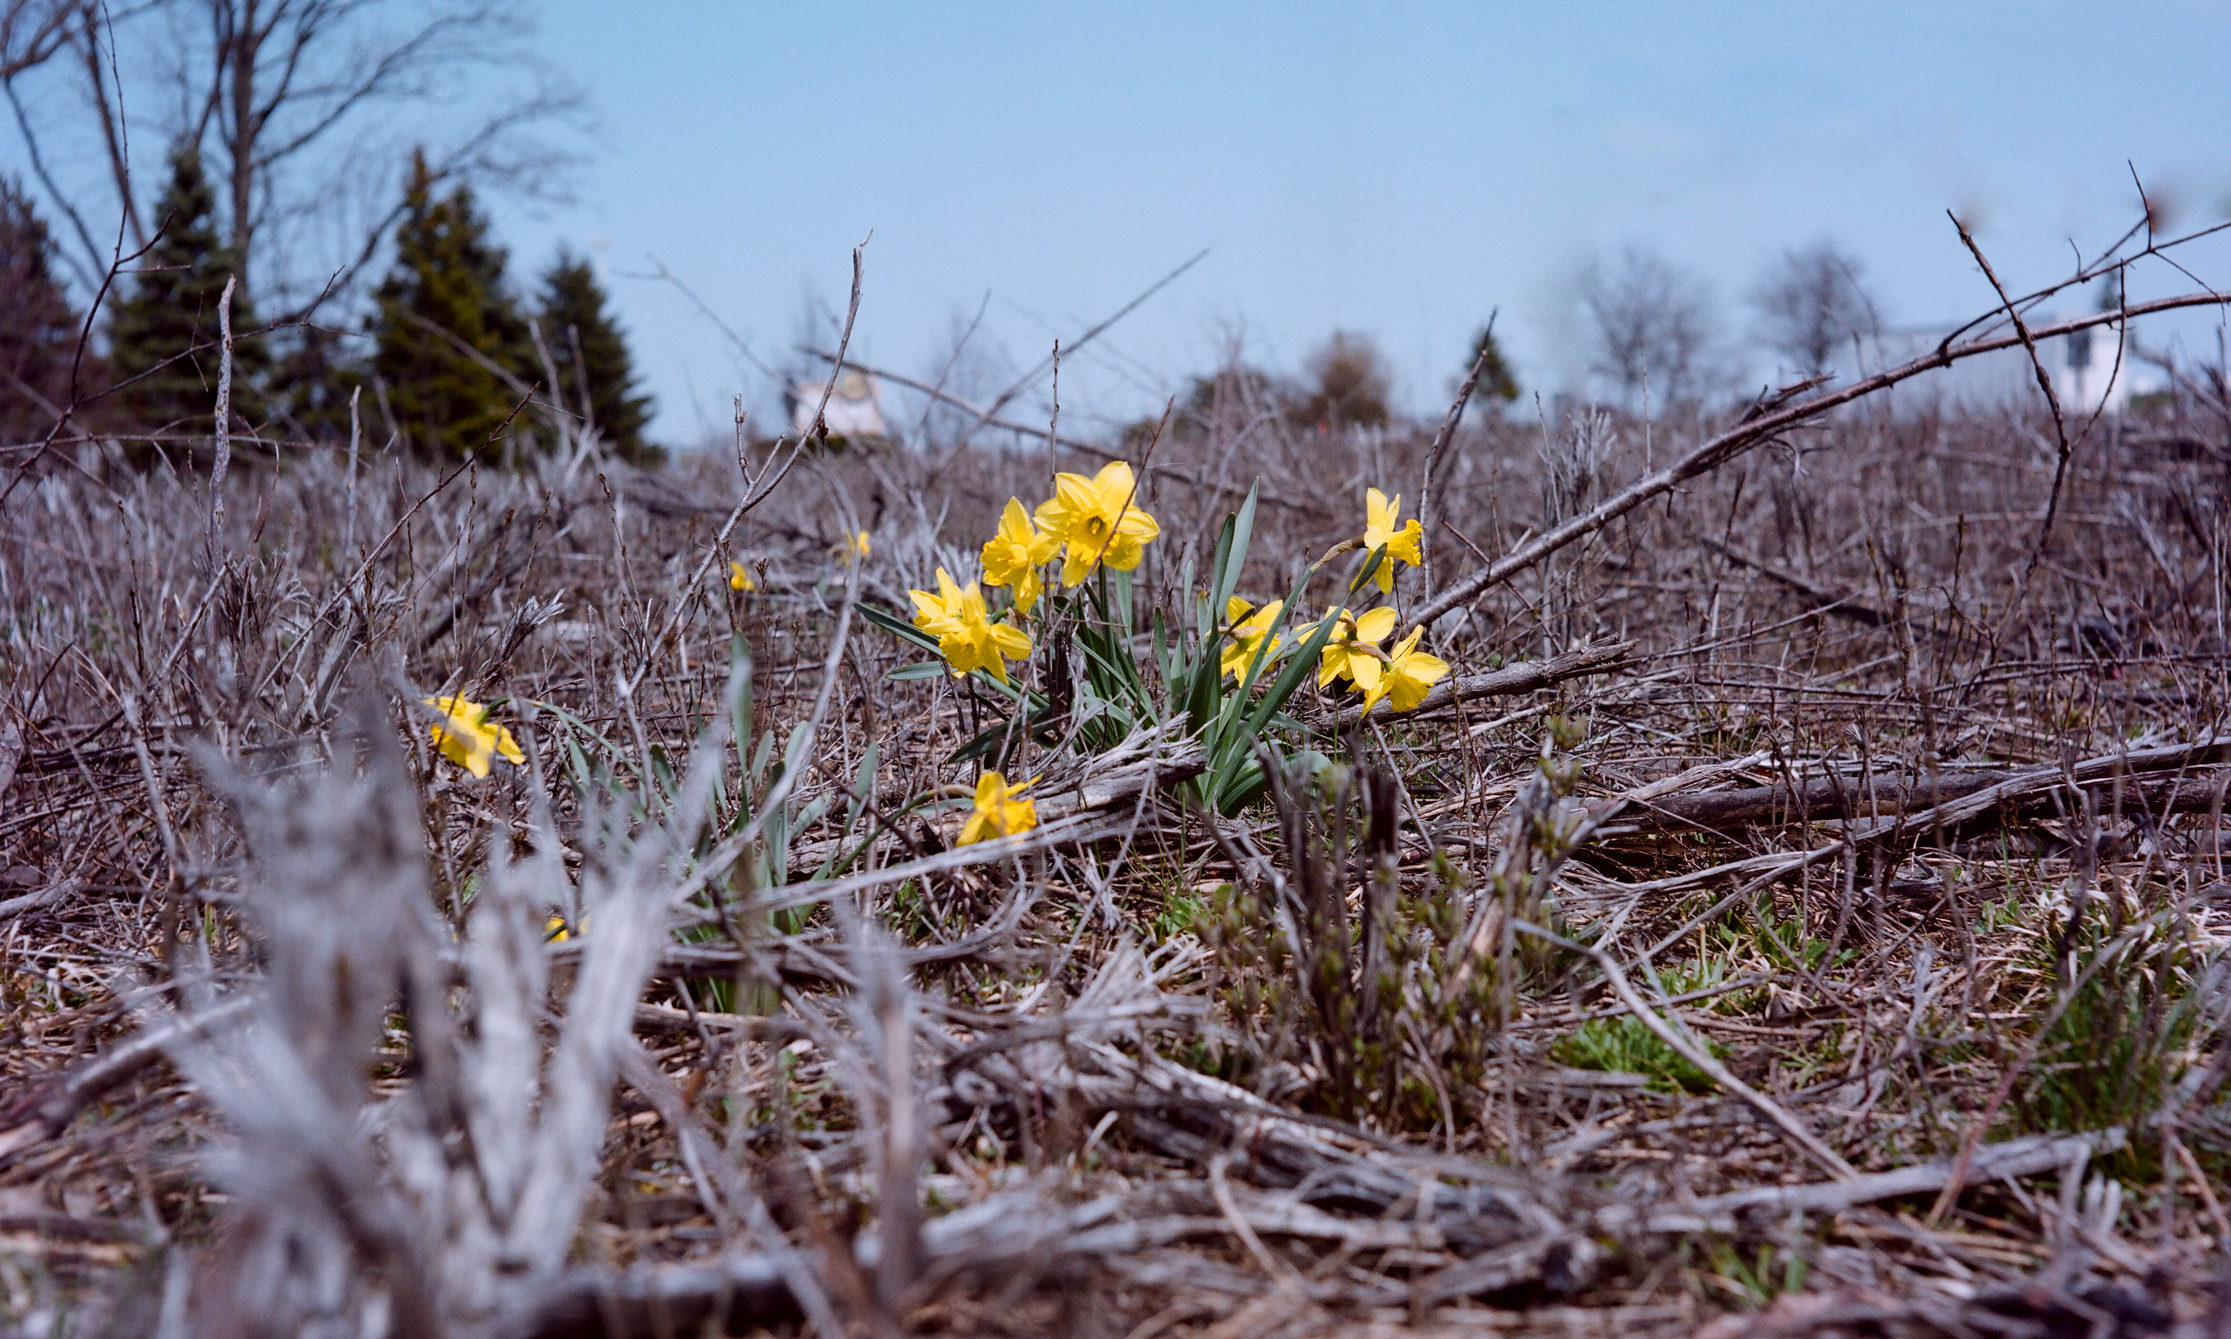 A Handful Of Yellow Flowers Grow In Barren Field Full Dried Up Dead Plants April 27 2013 Flickr Ankur Sohoni CC NC ND License